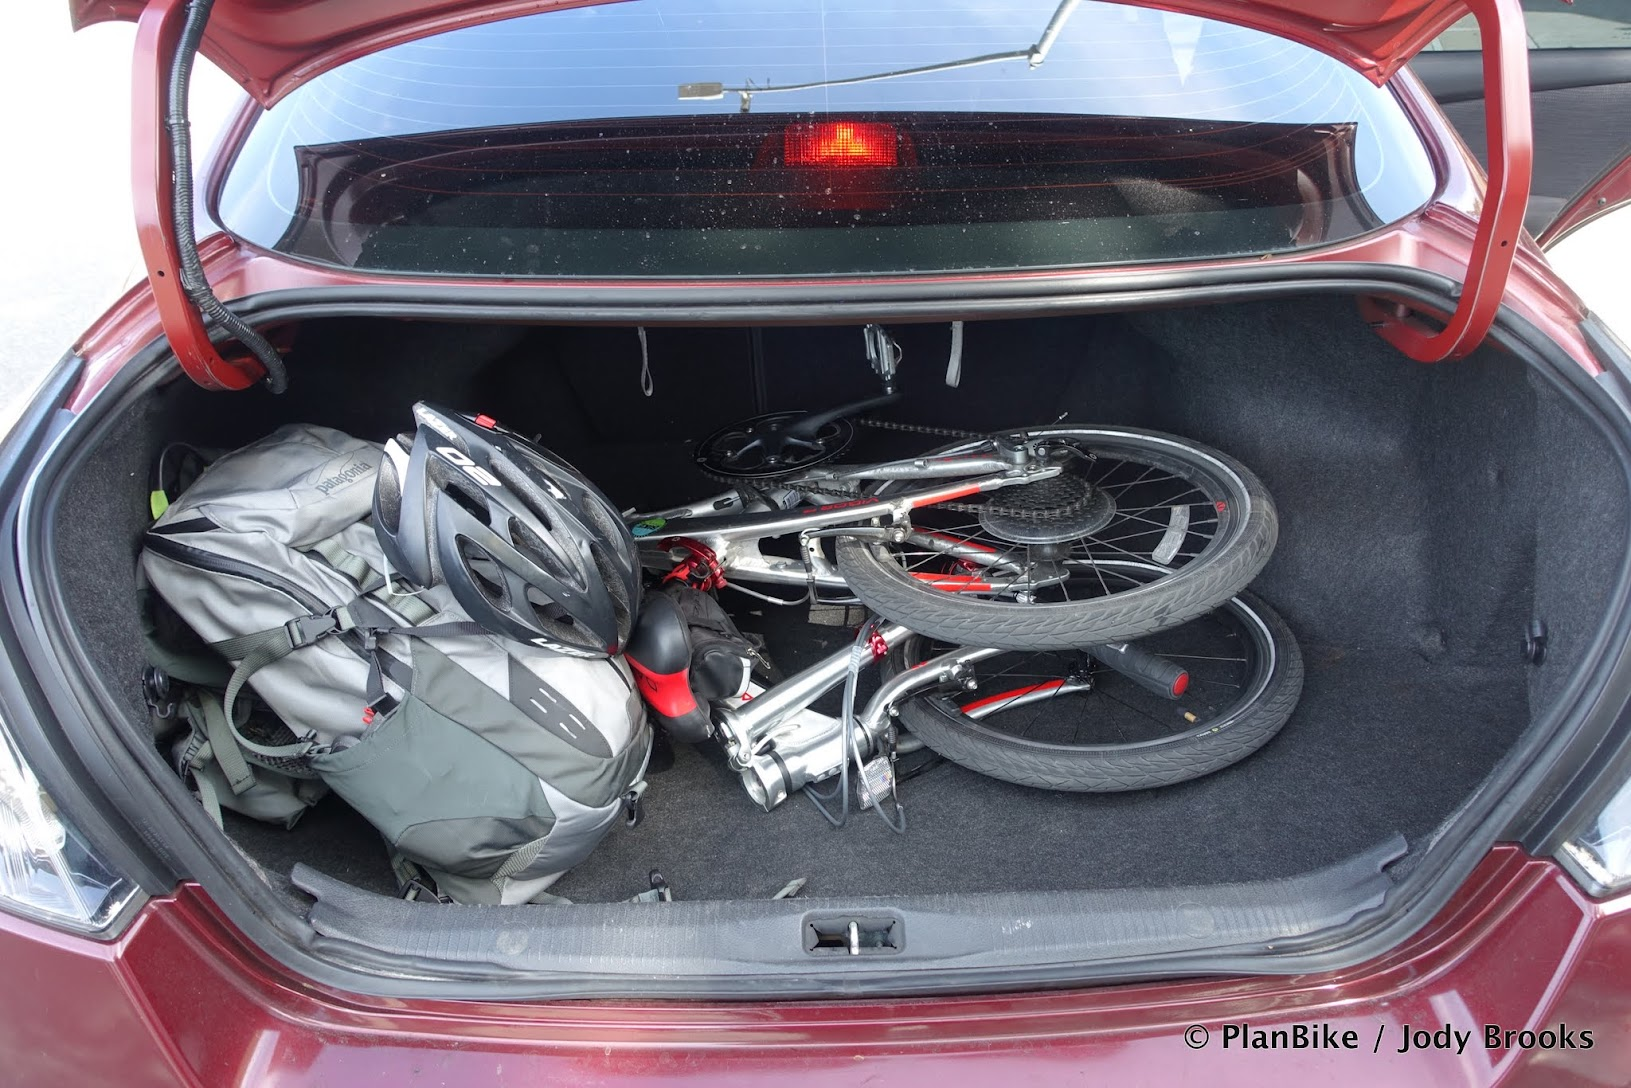 Folding Bikes easily fit in cars.